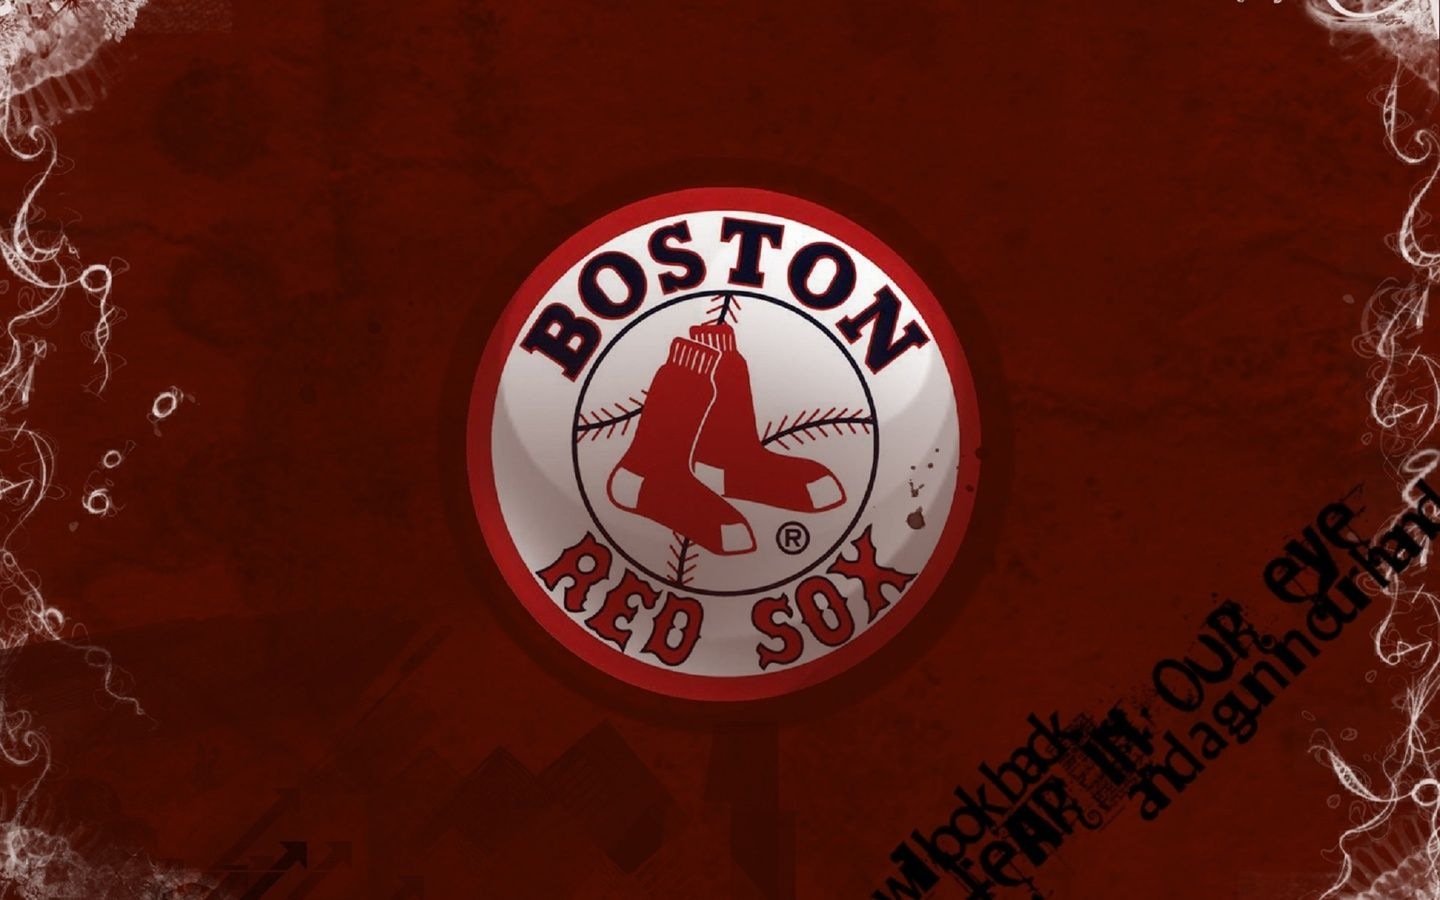 Red Sox Background Firefox Wallpaper Free Download Wallpapers Desktop